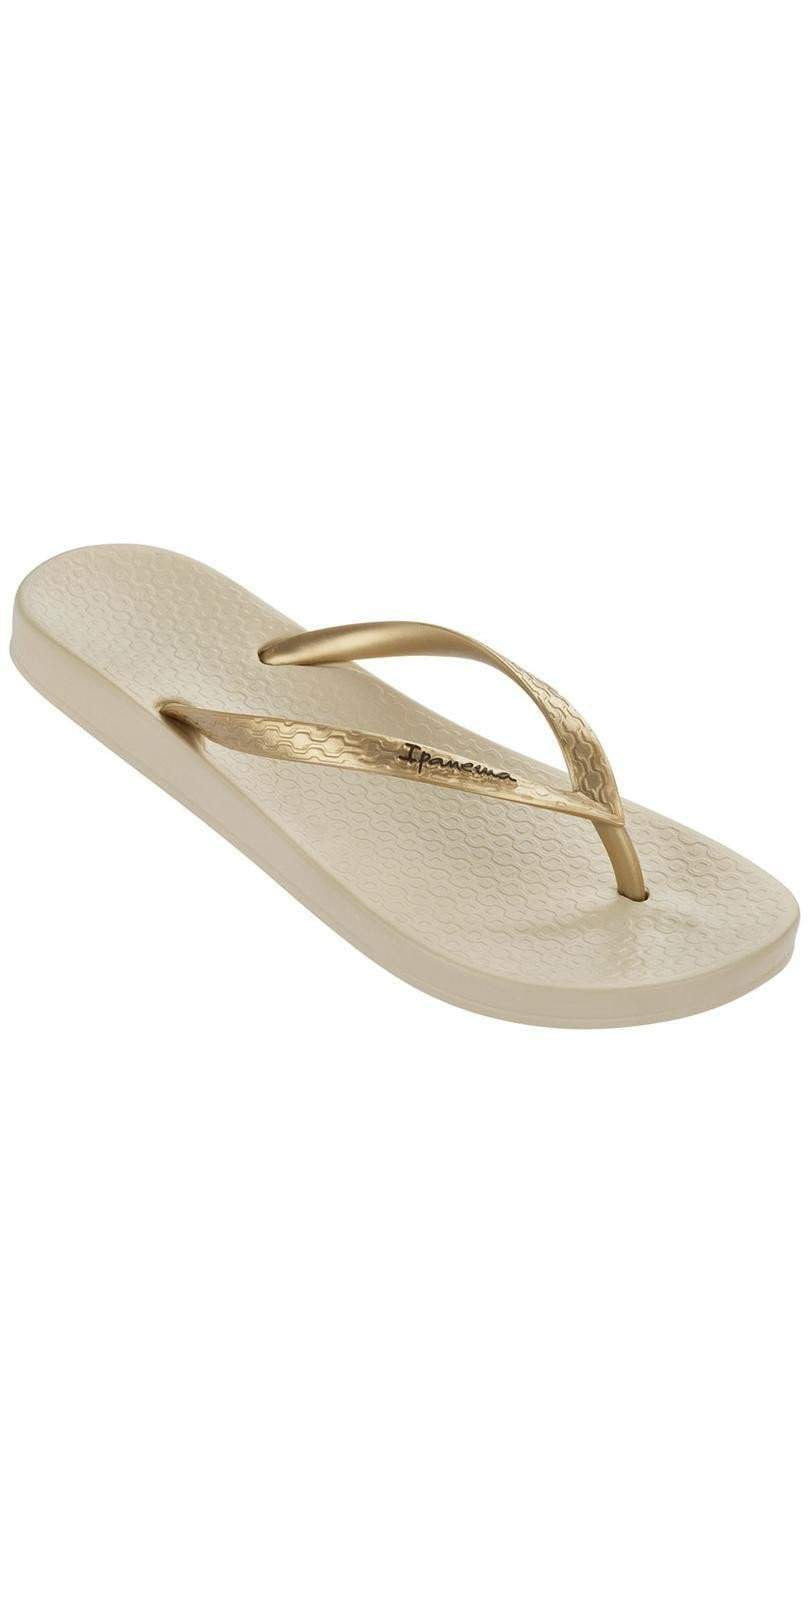 Ipanema Ana Tan Flip Flop in Beige/Gold 81030-BG/GLD: